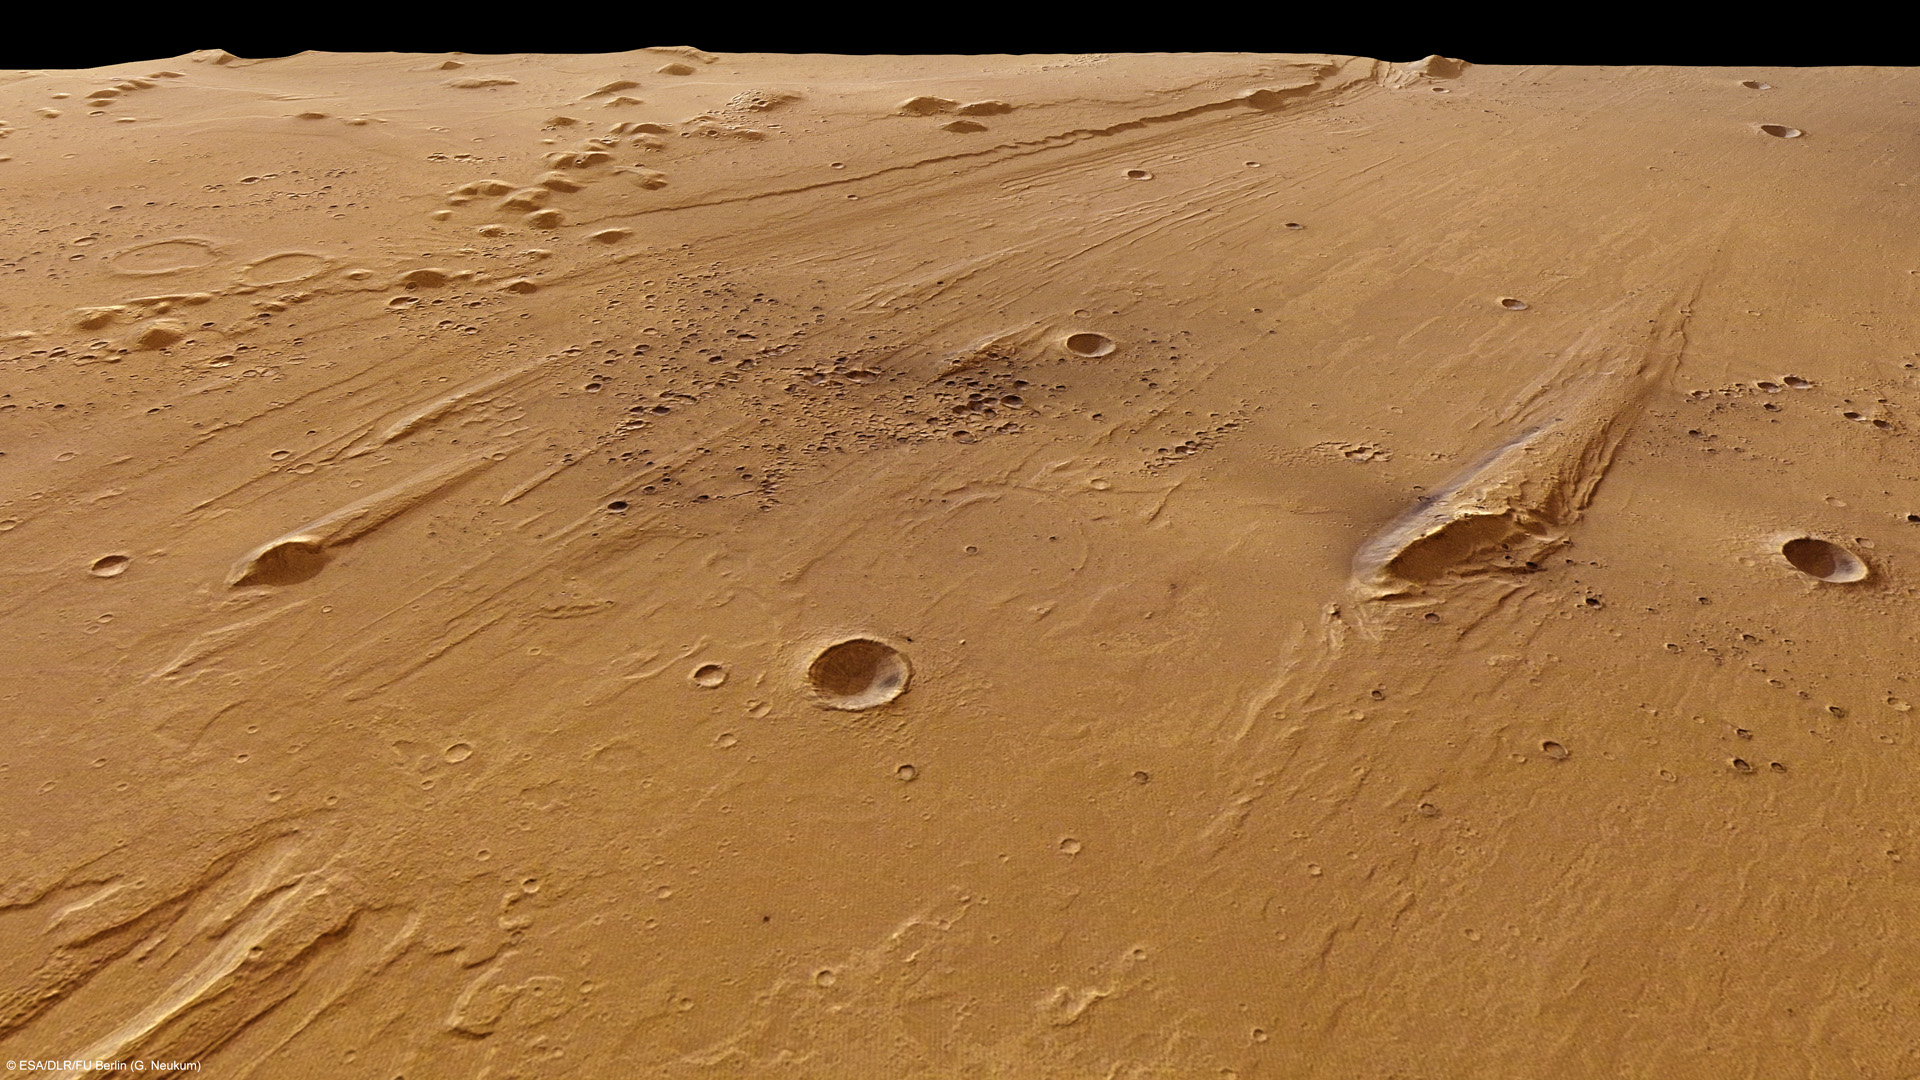 Mars Express Observes Clusters Of Recent Craters In Ares